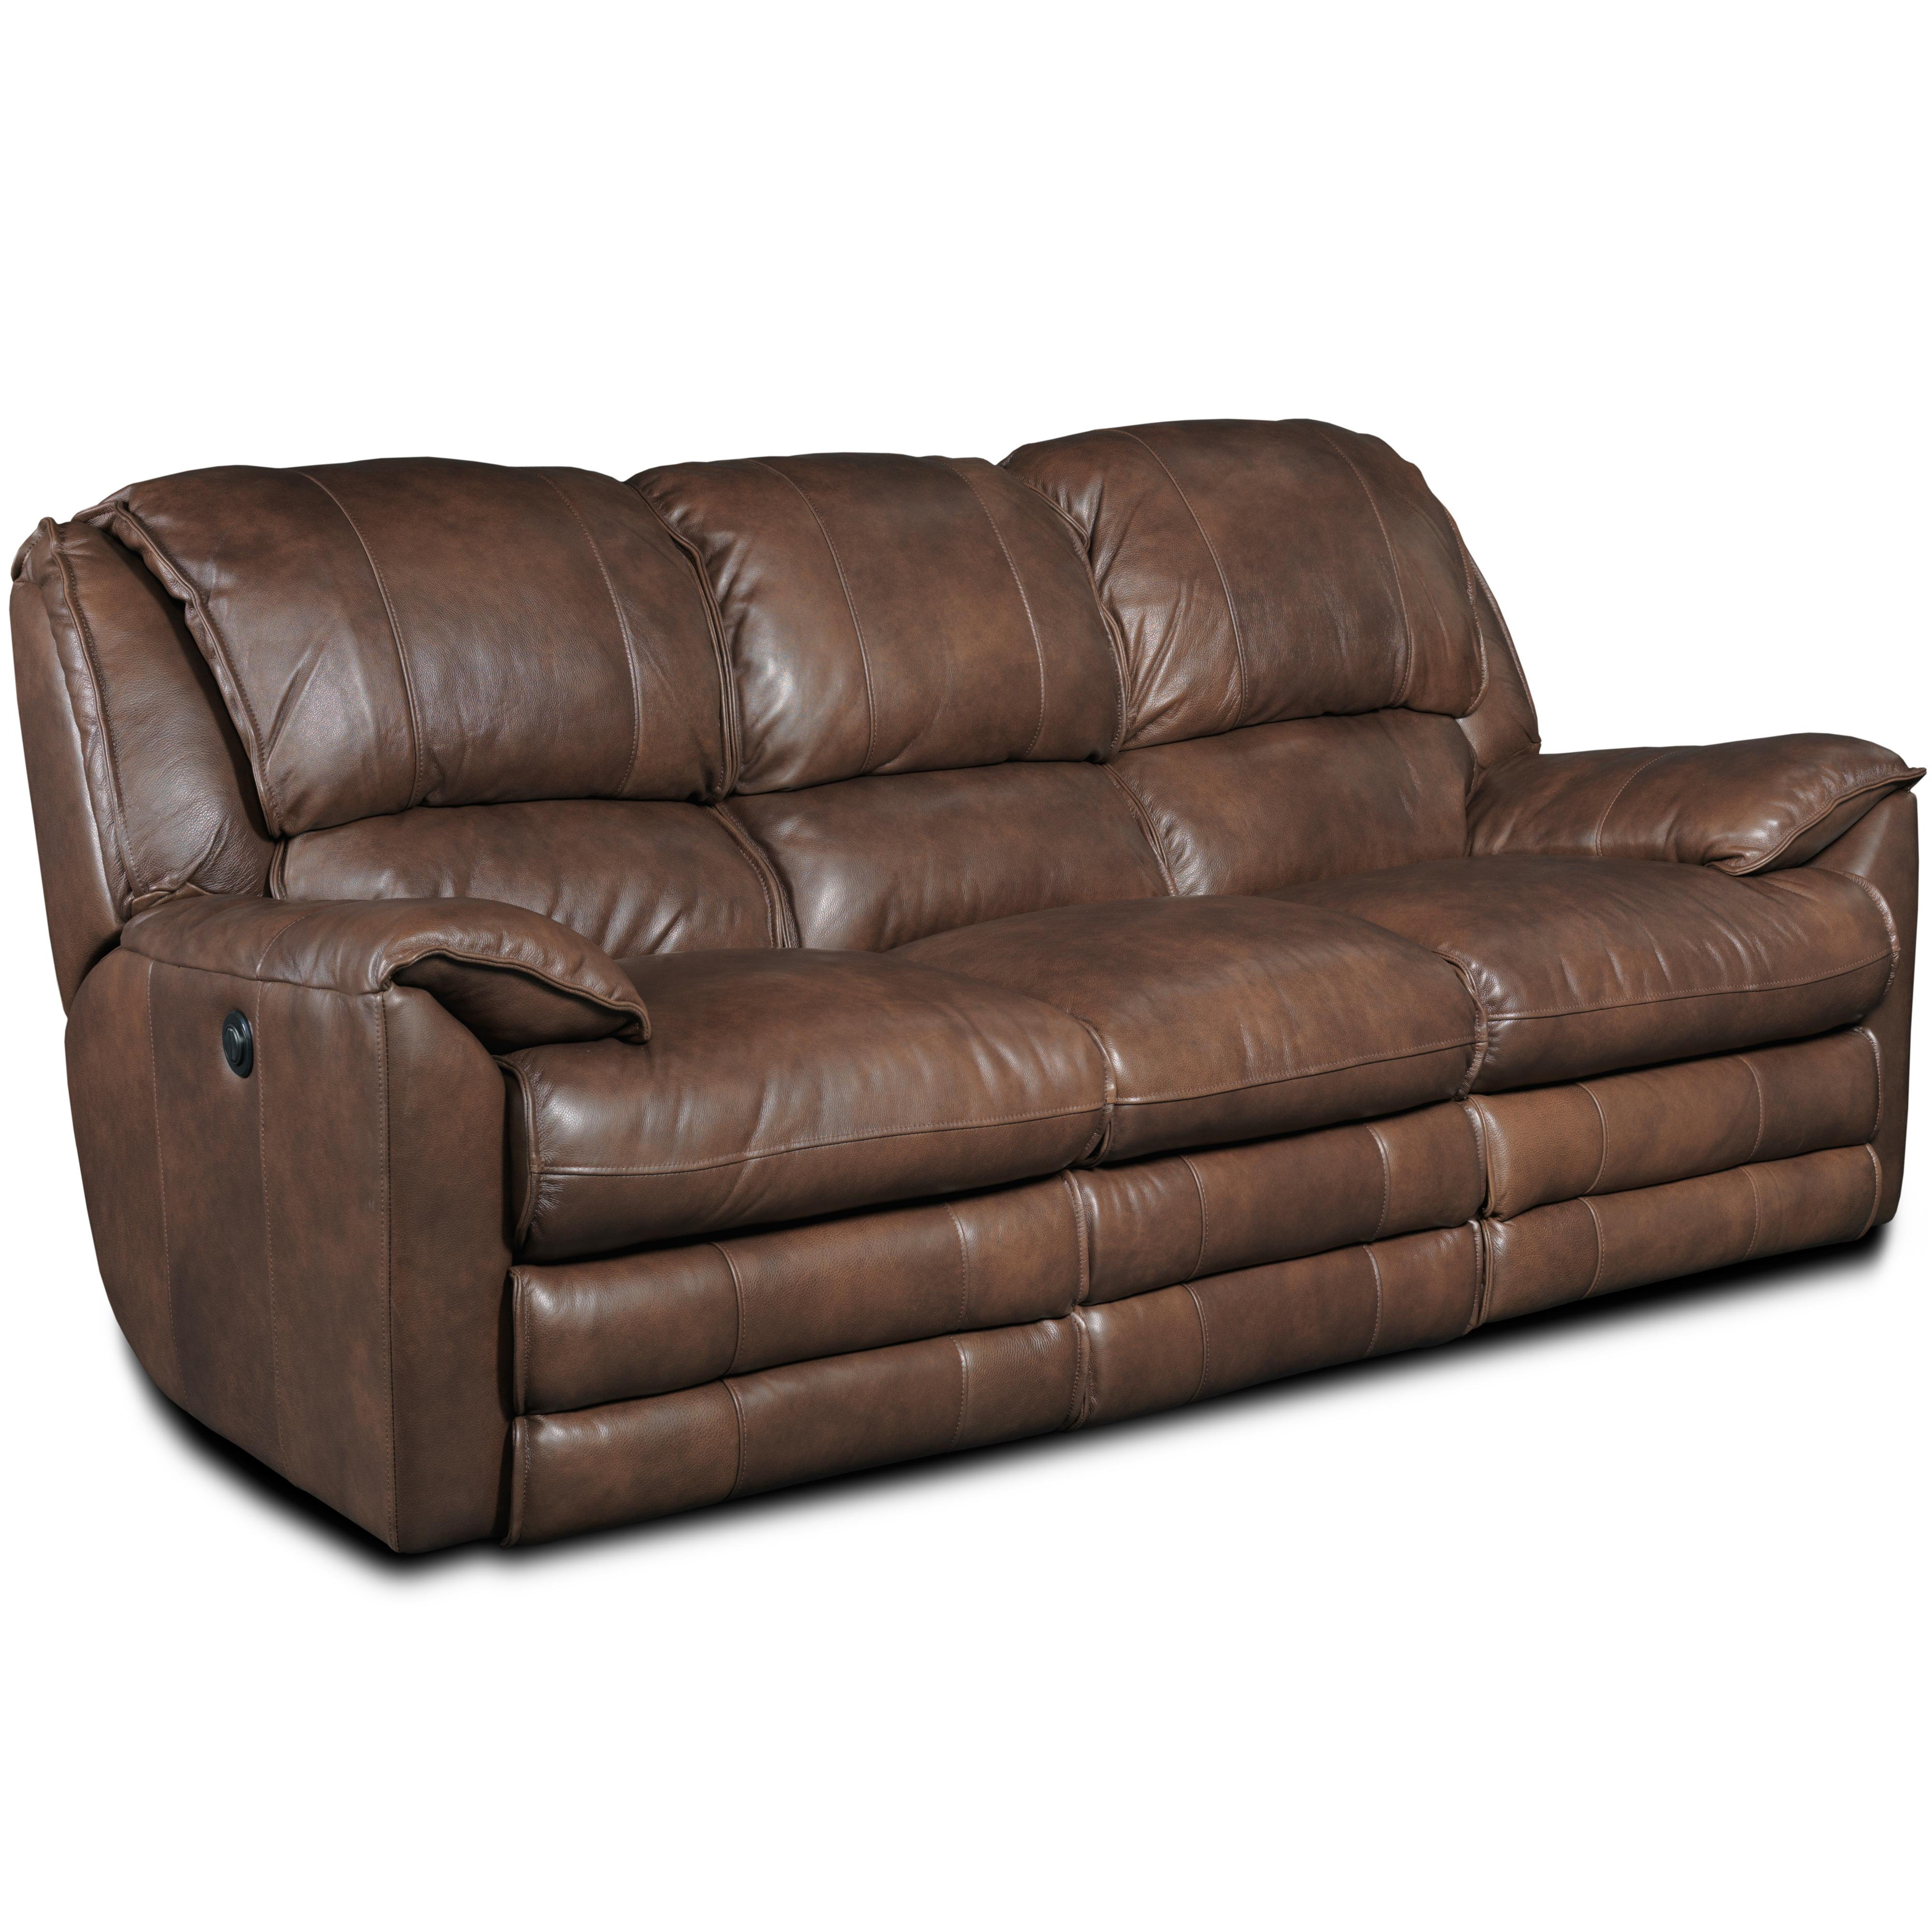 Hooker Furniture SS508 Casual Power Motion Sofa with Pillow Top